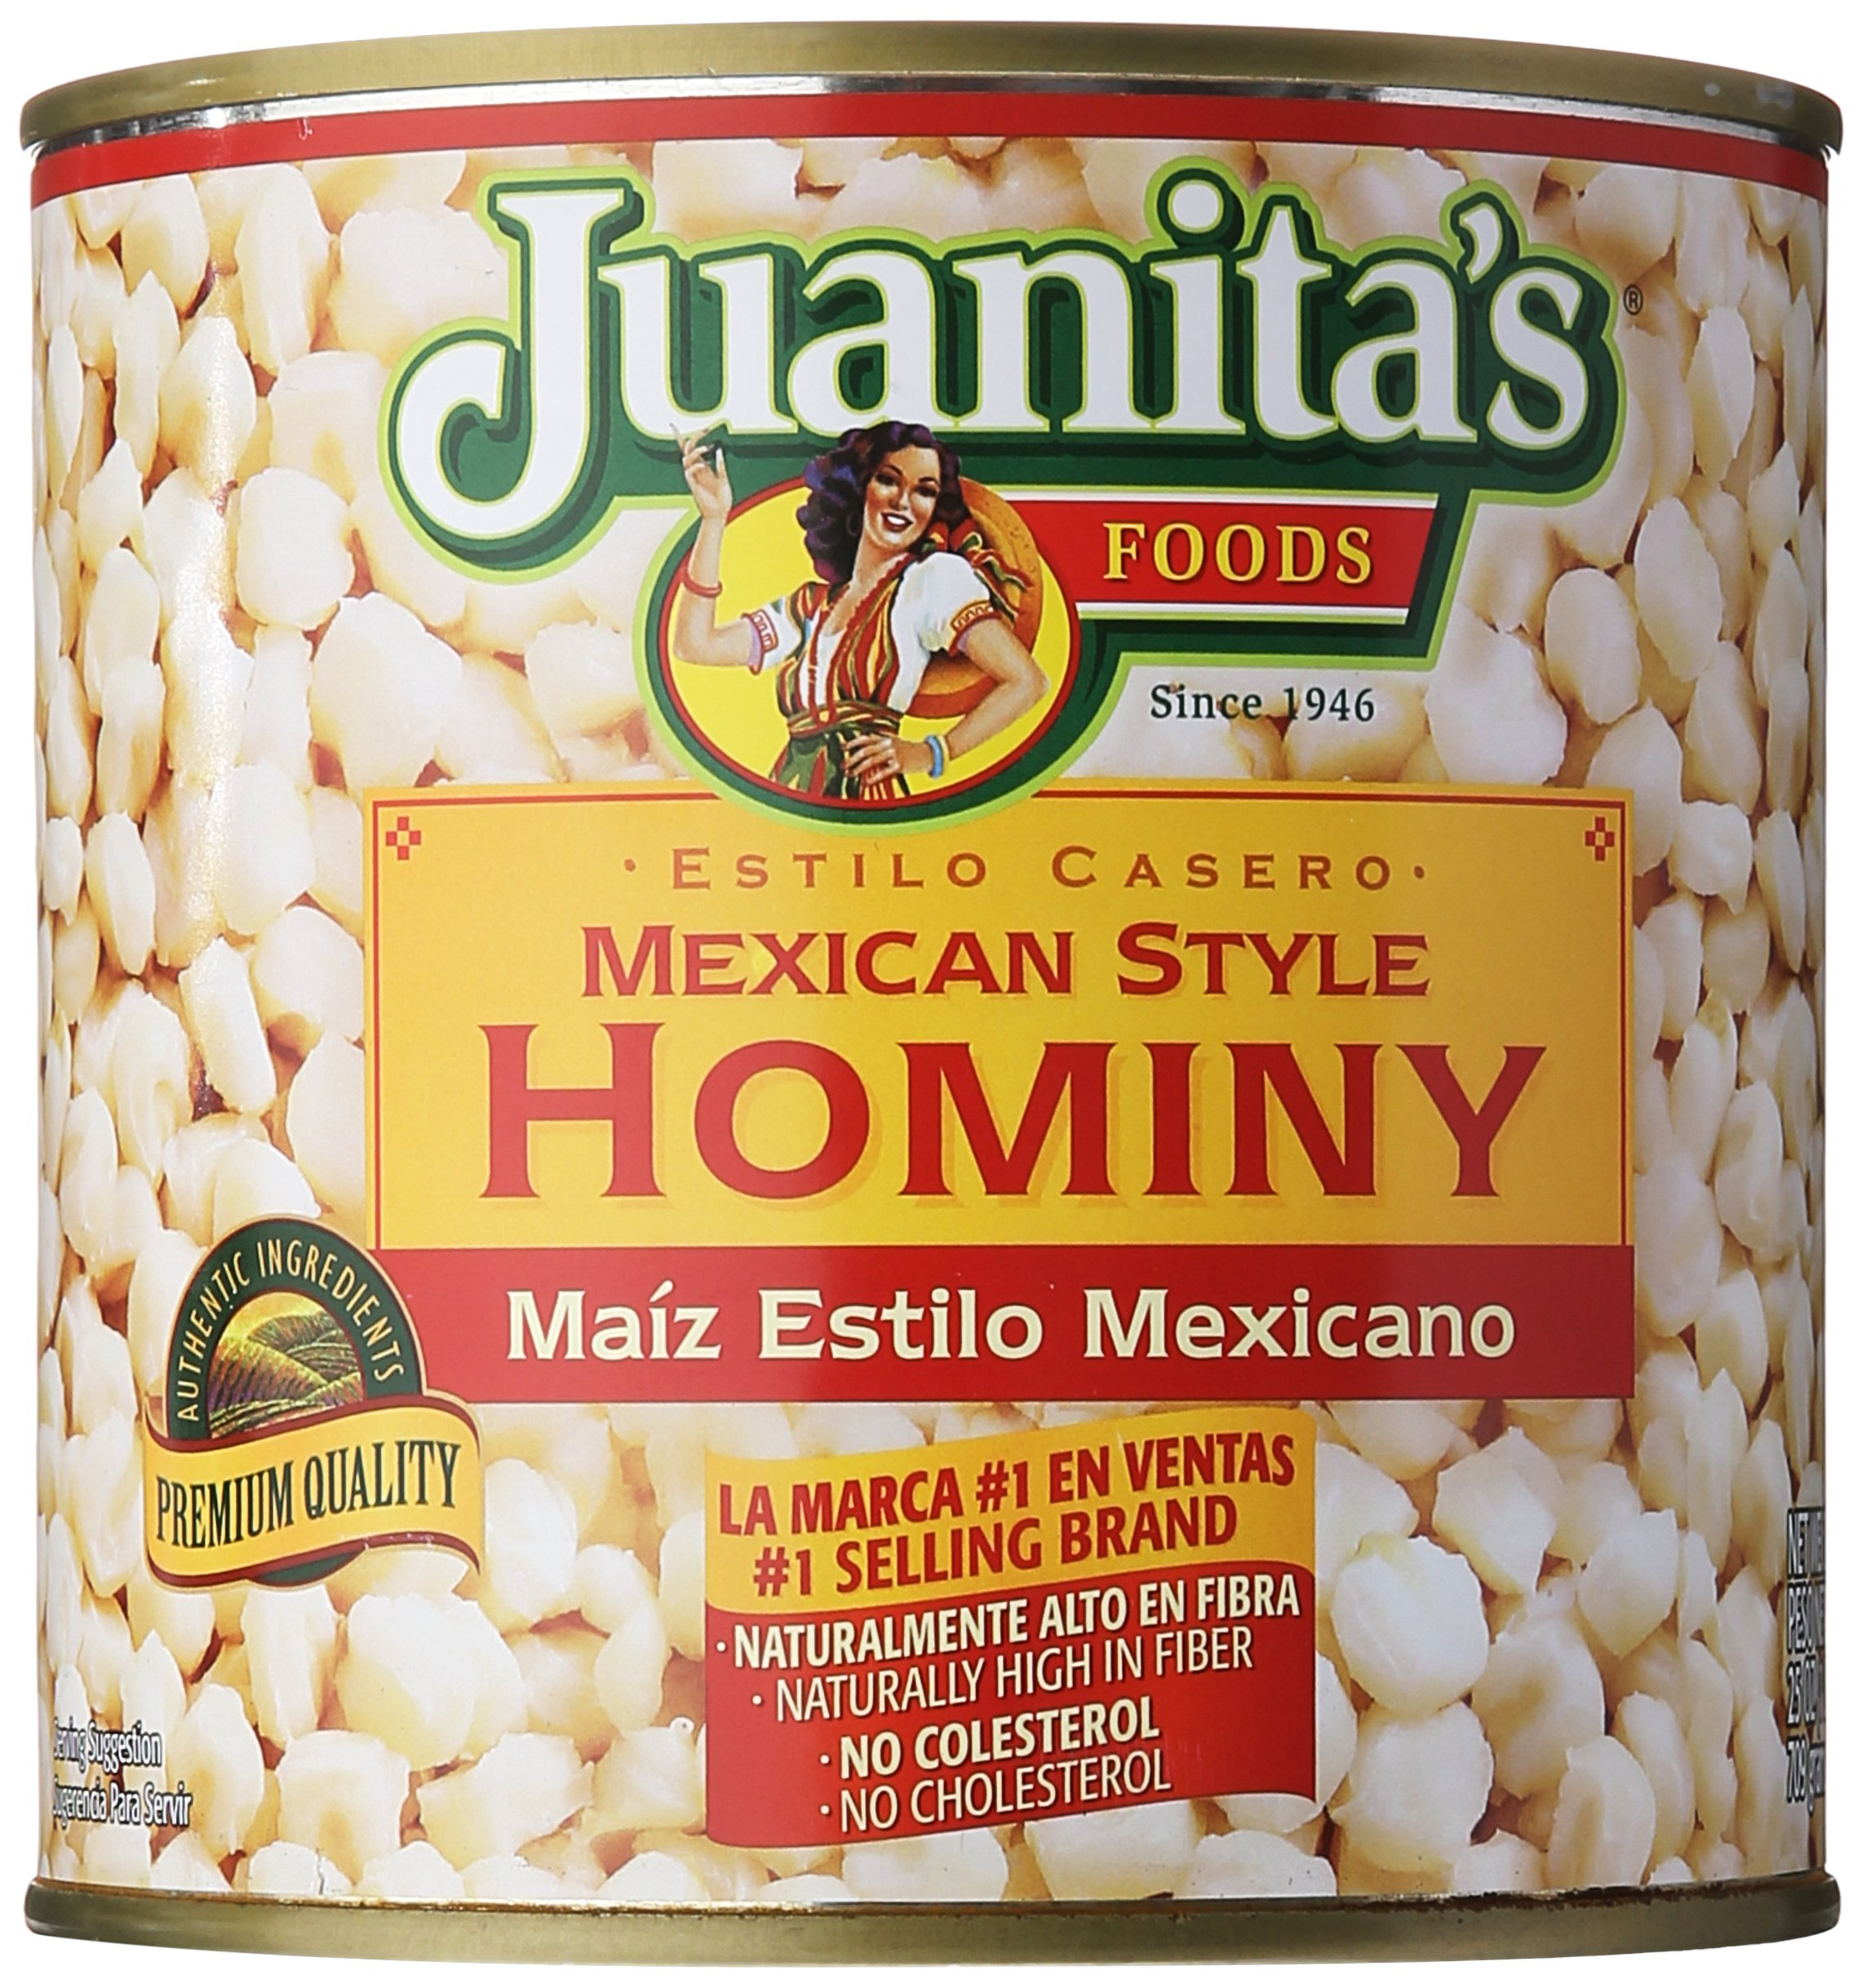 Juanita's Foods Mexican Style Hominy, 25 oz